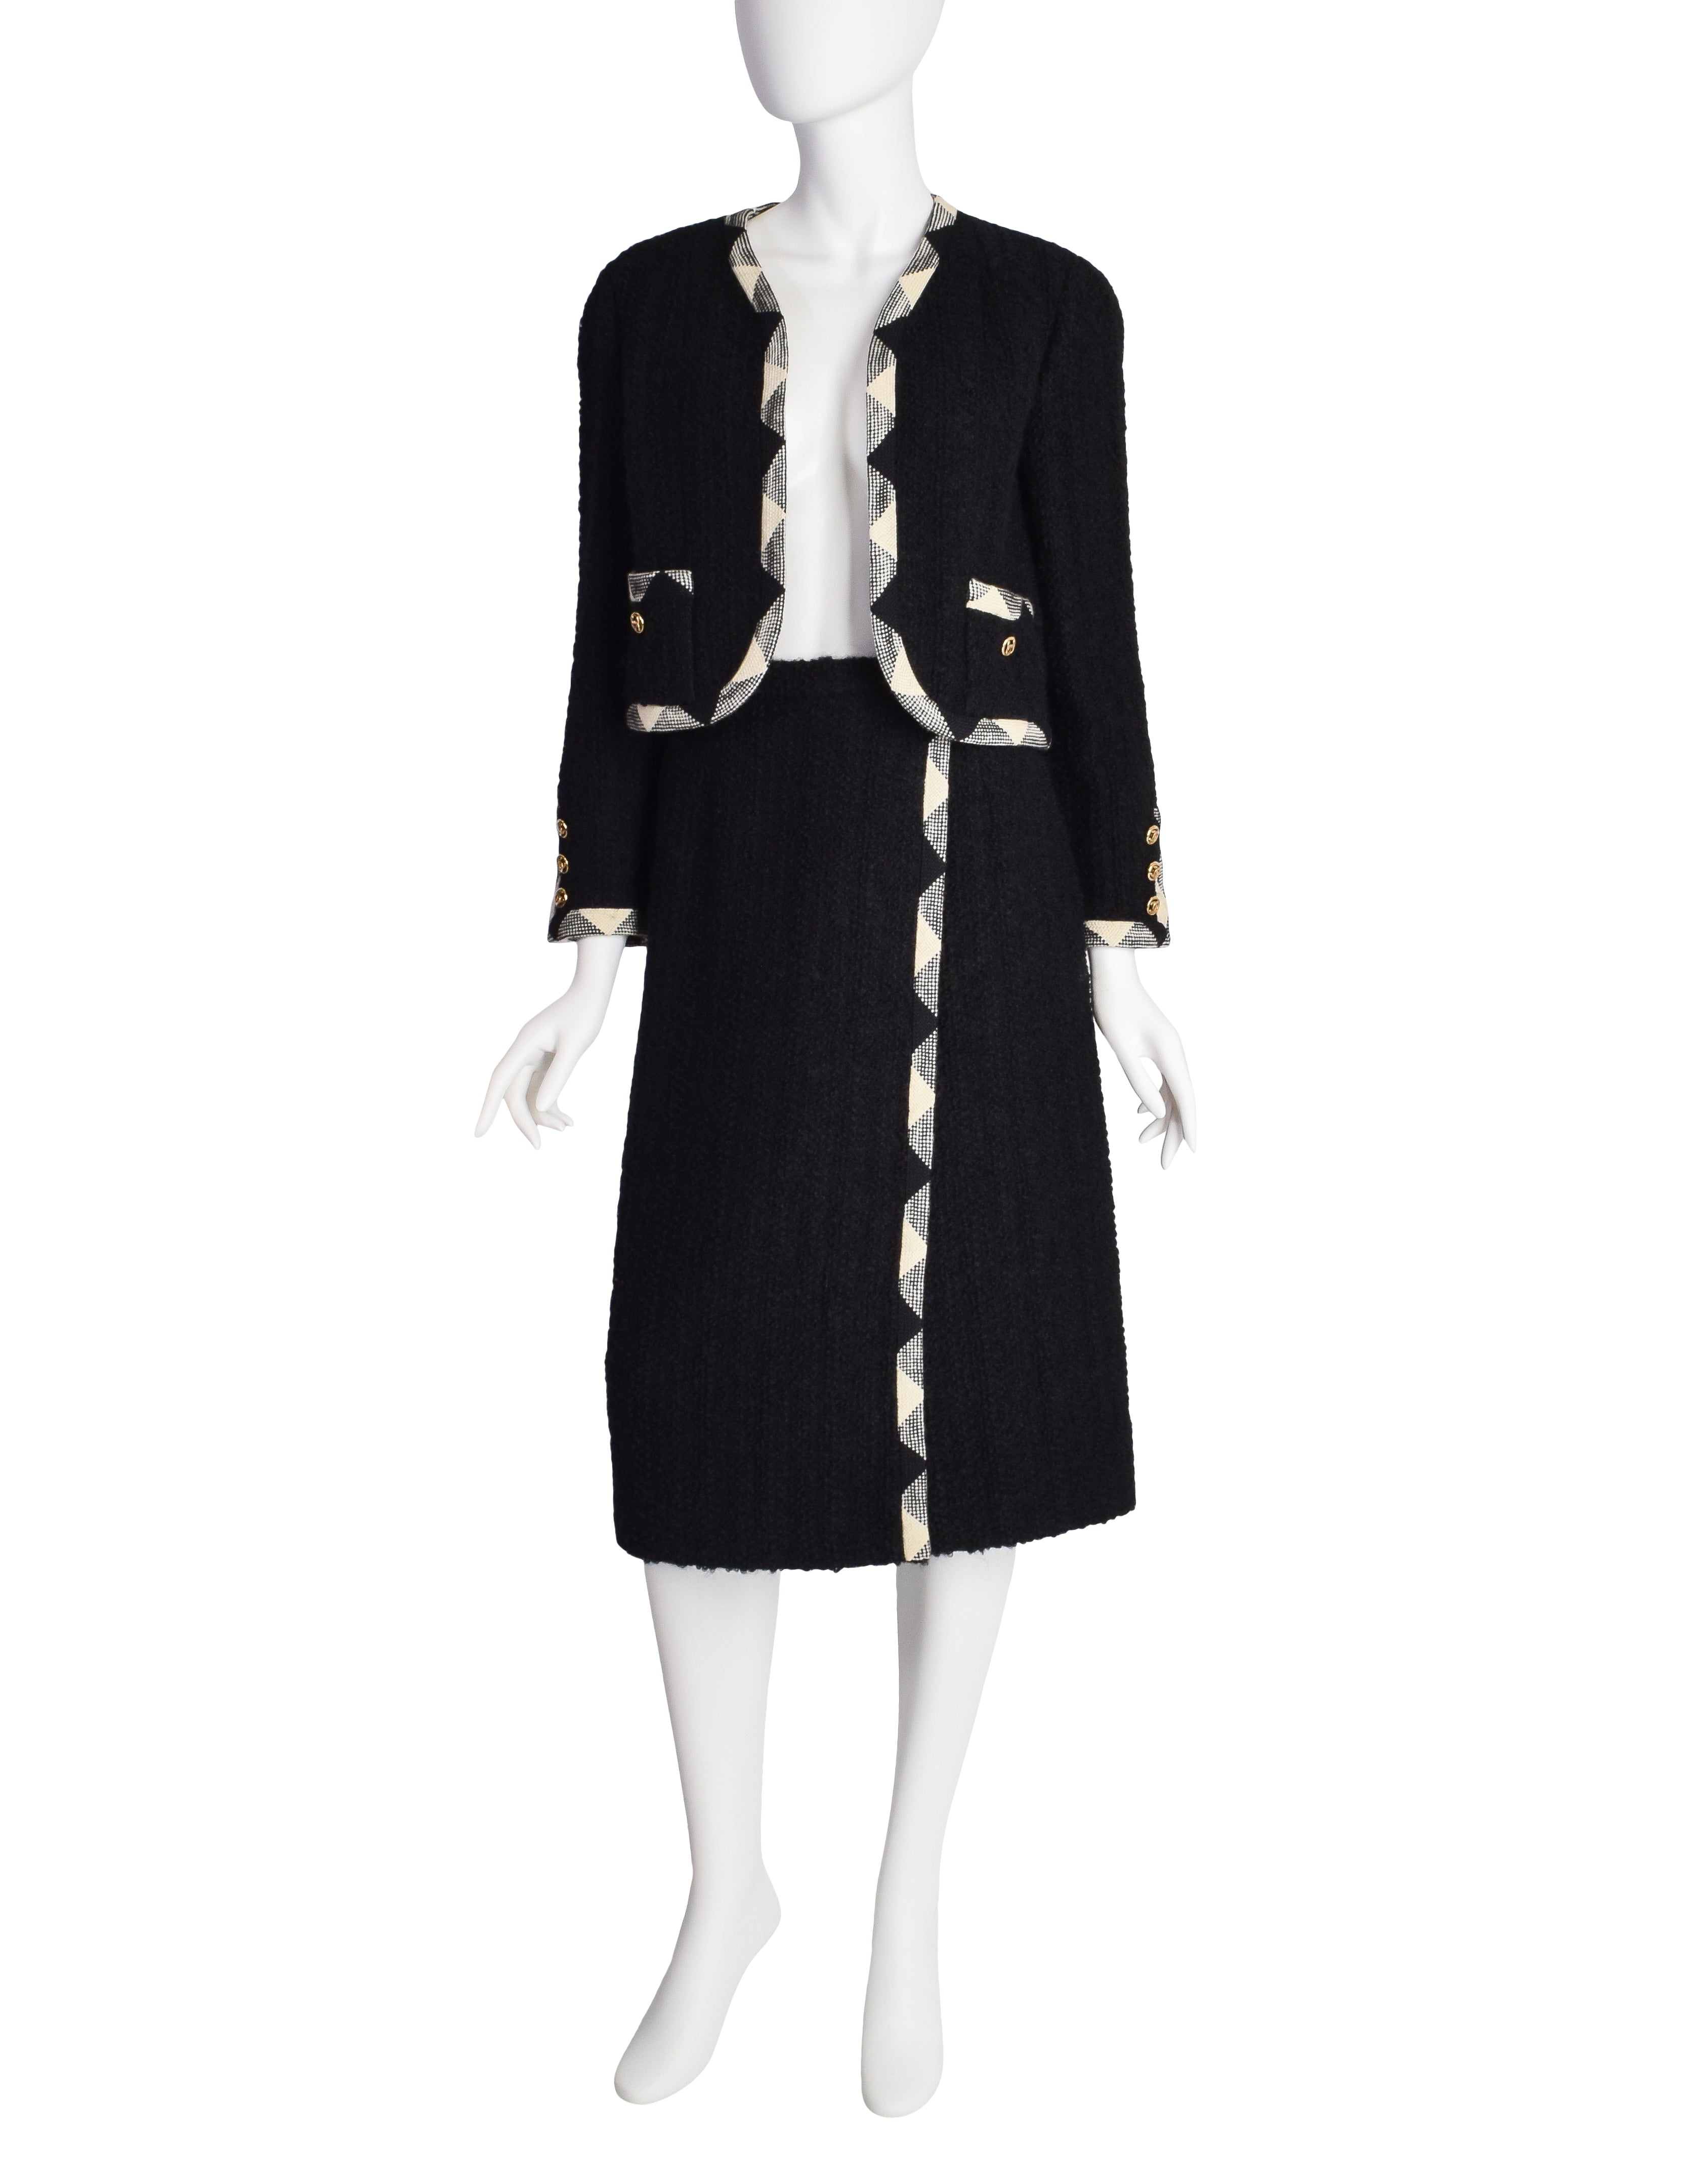 Chanel Vintage Black and White Boucle Jacket and Skirt Two Piece Suit